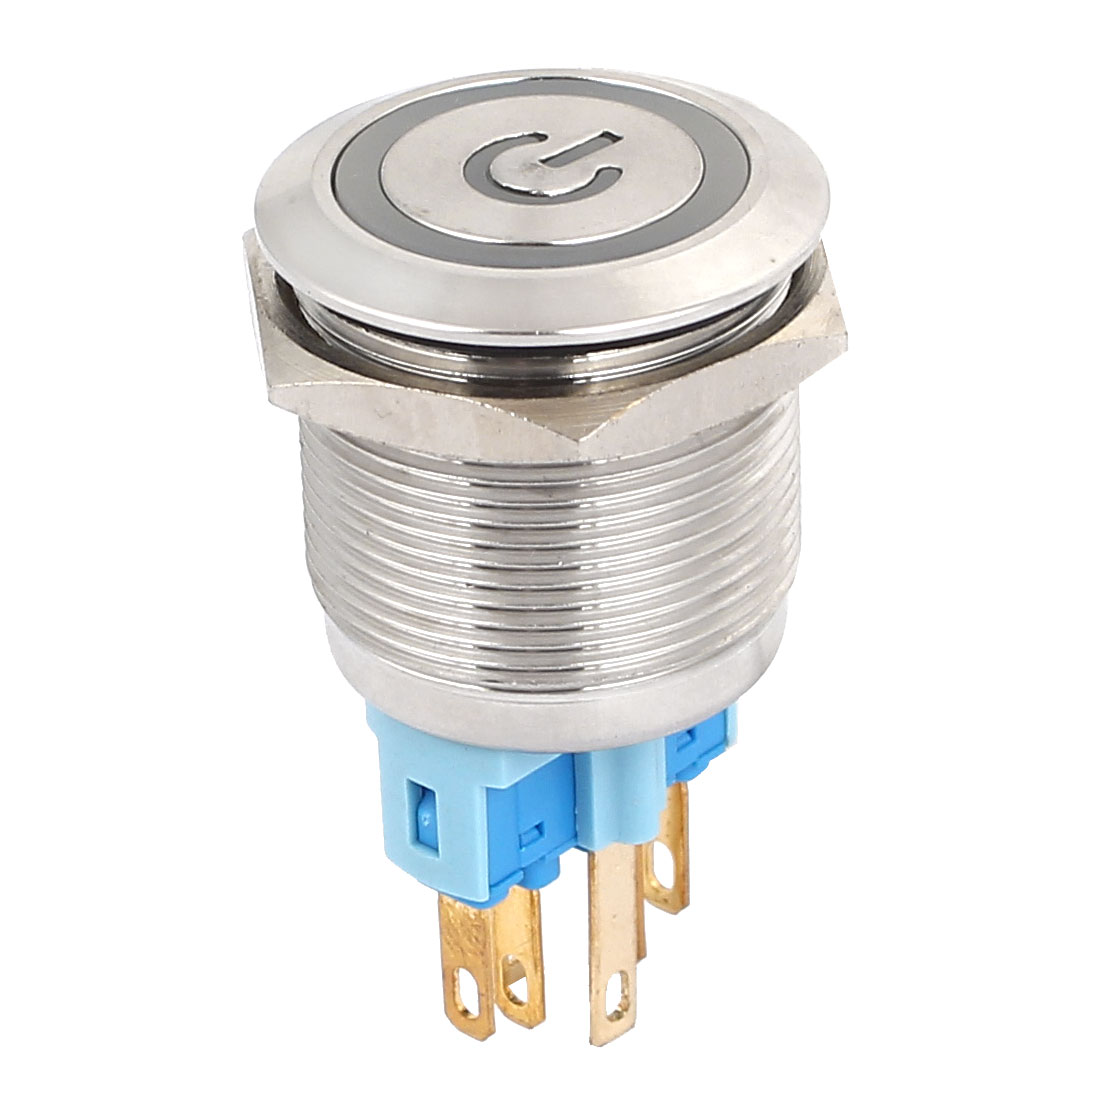 24V 22mm Dia Thread Blue LED Lamp Momentary Metal Power Pushbutton Switch